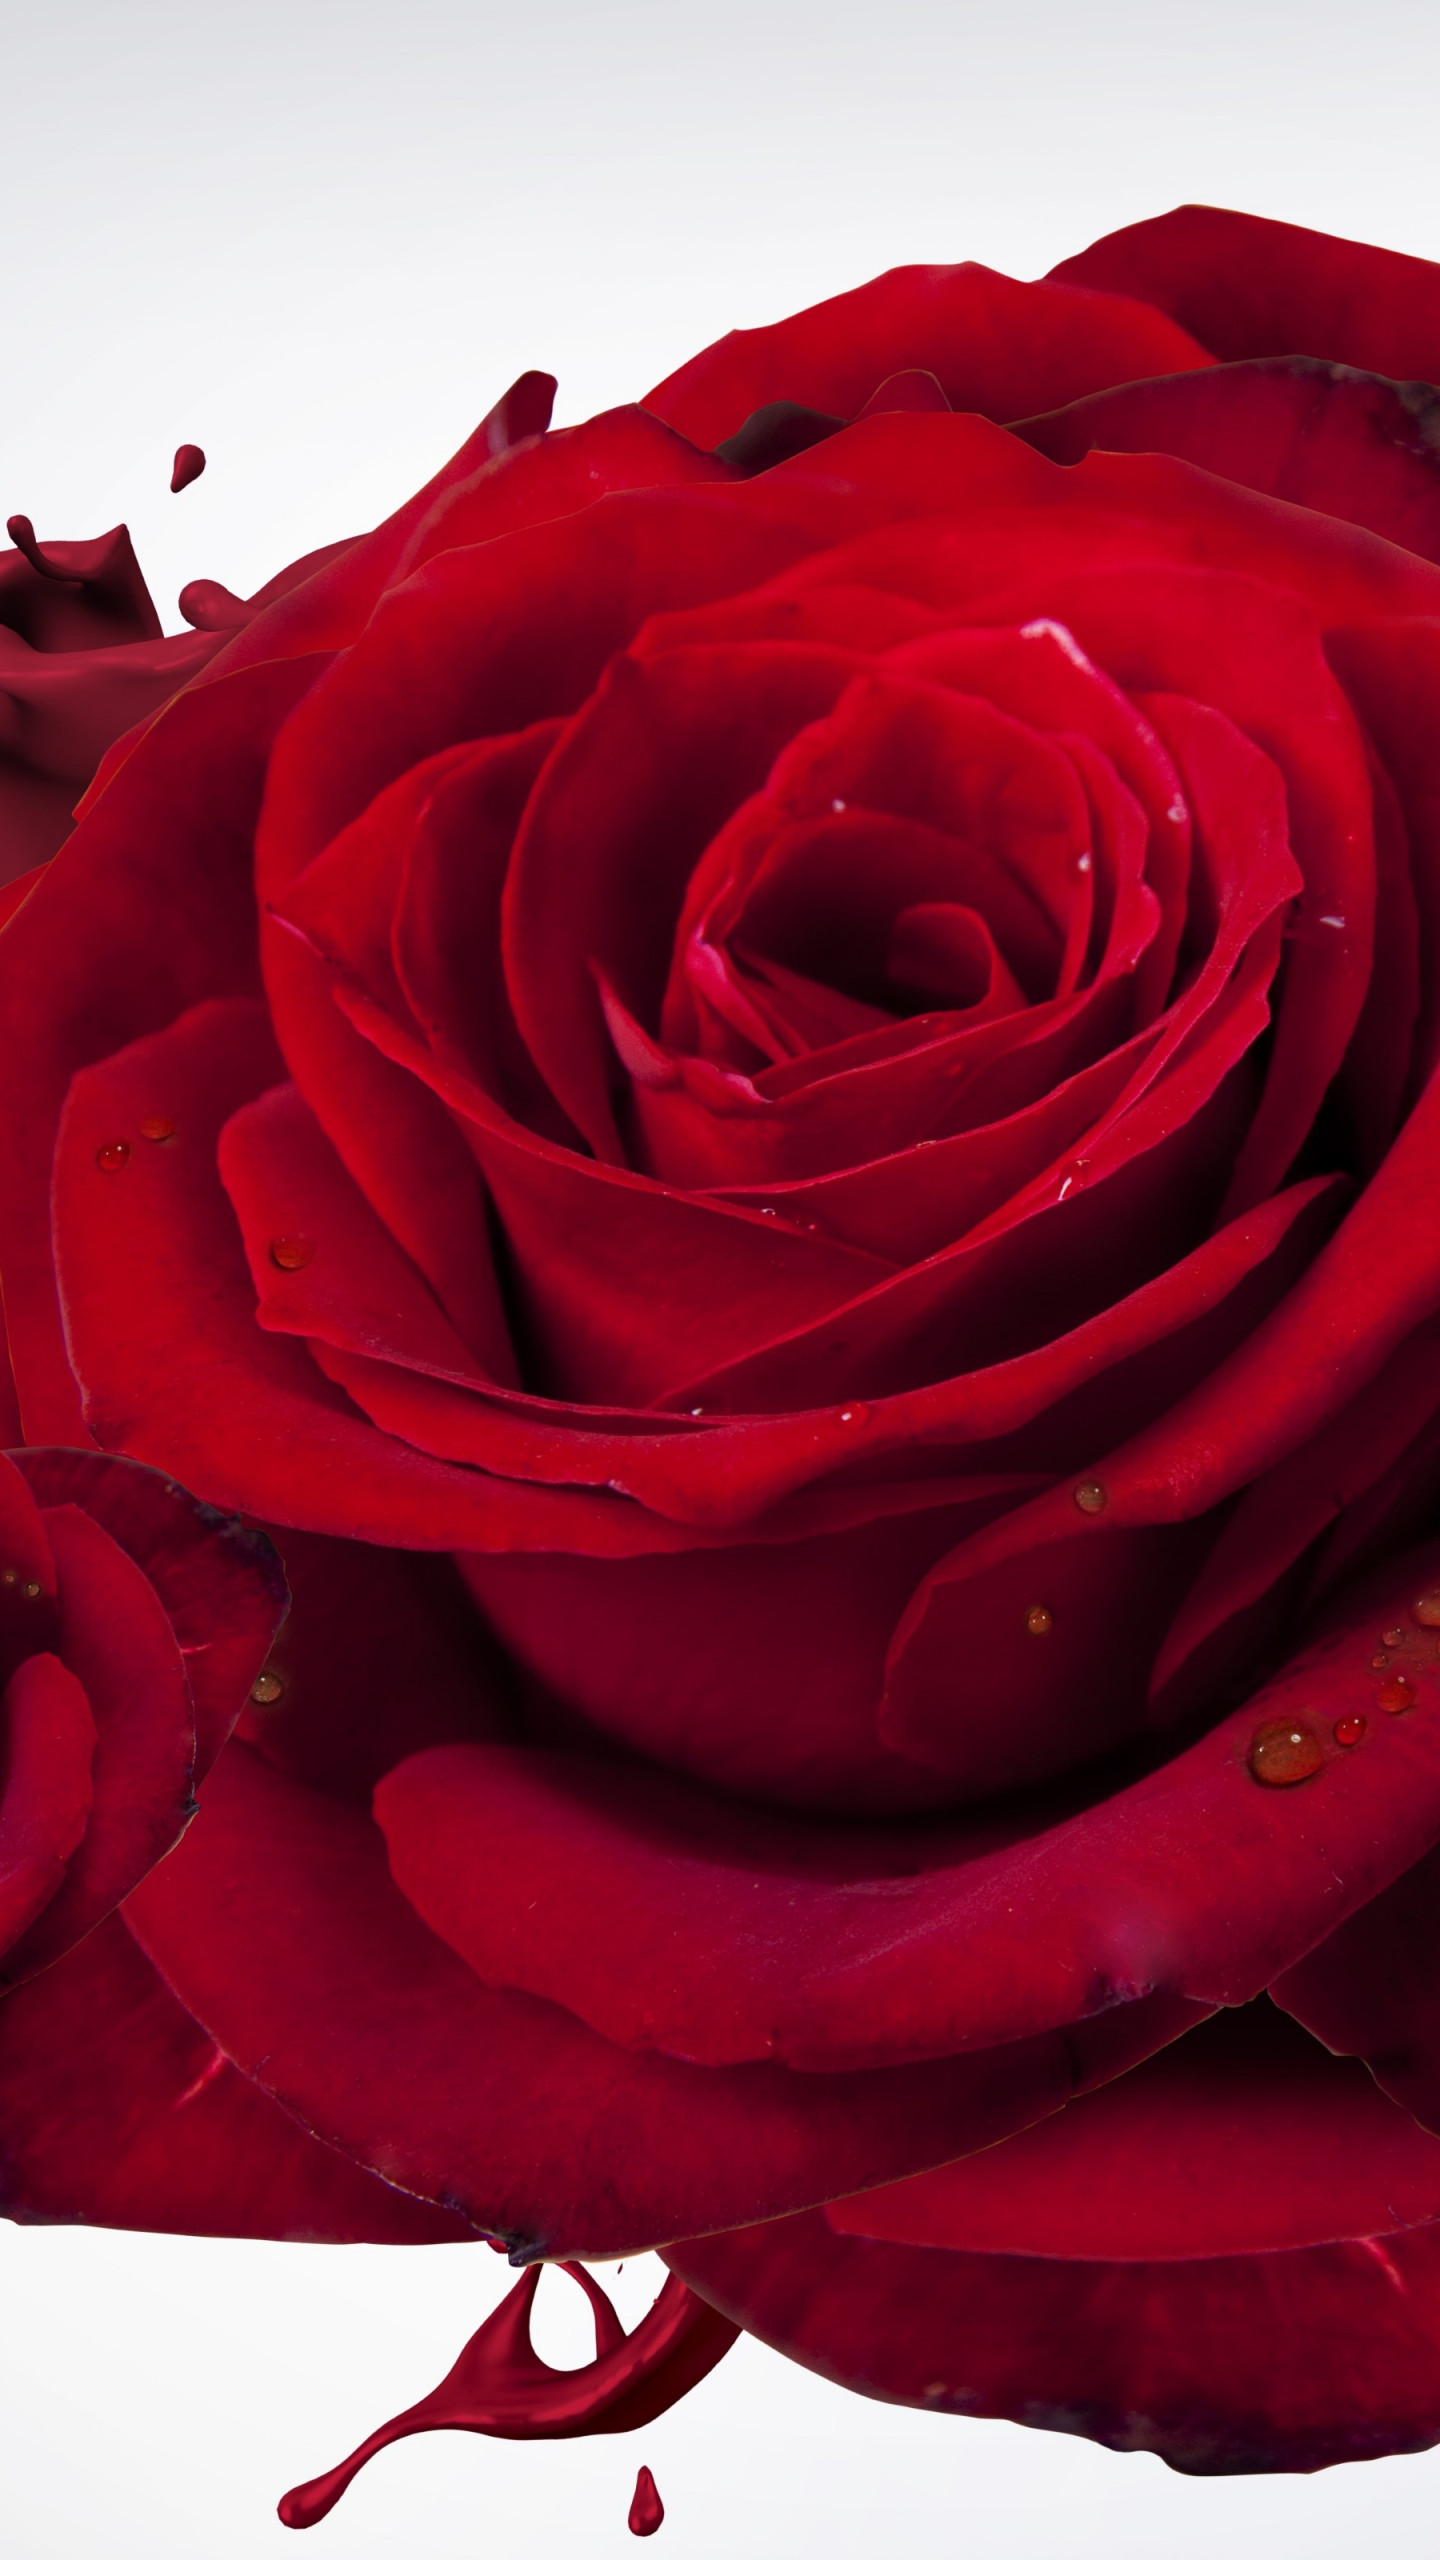 The most beautiful red roses wallpaper 1440x2560